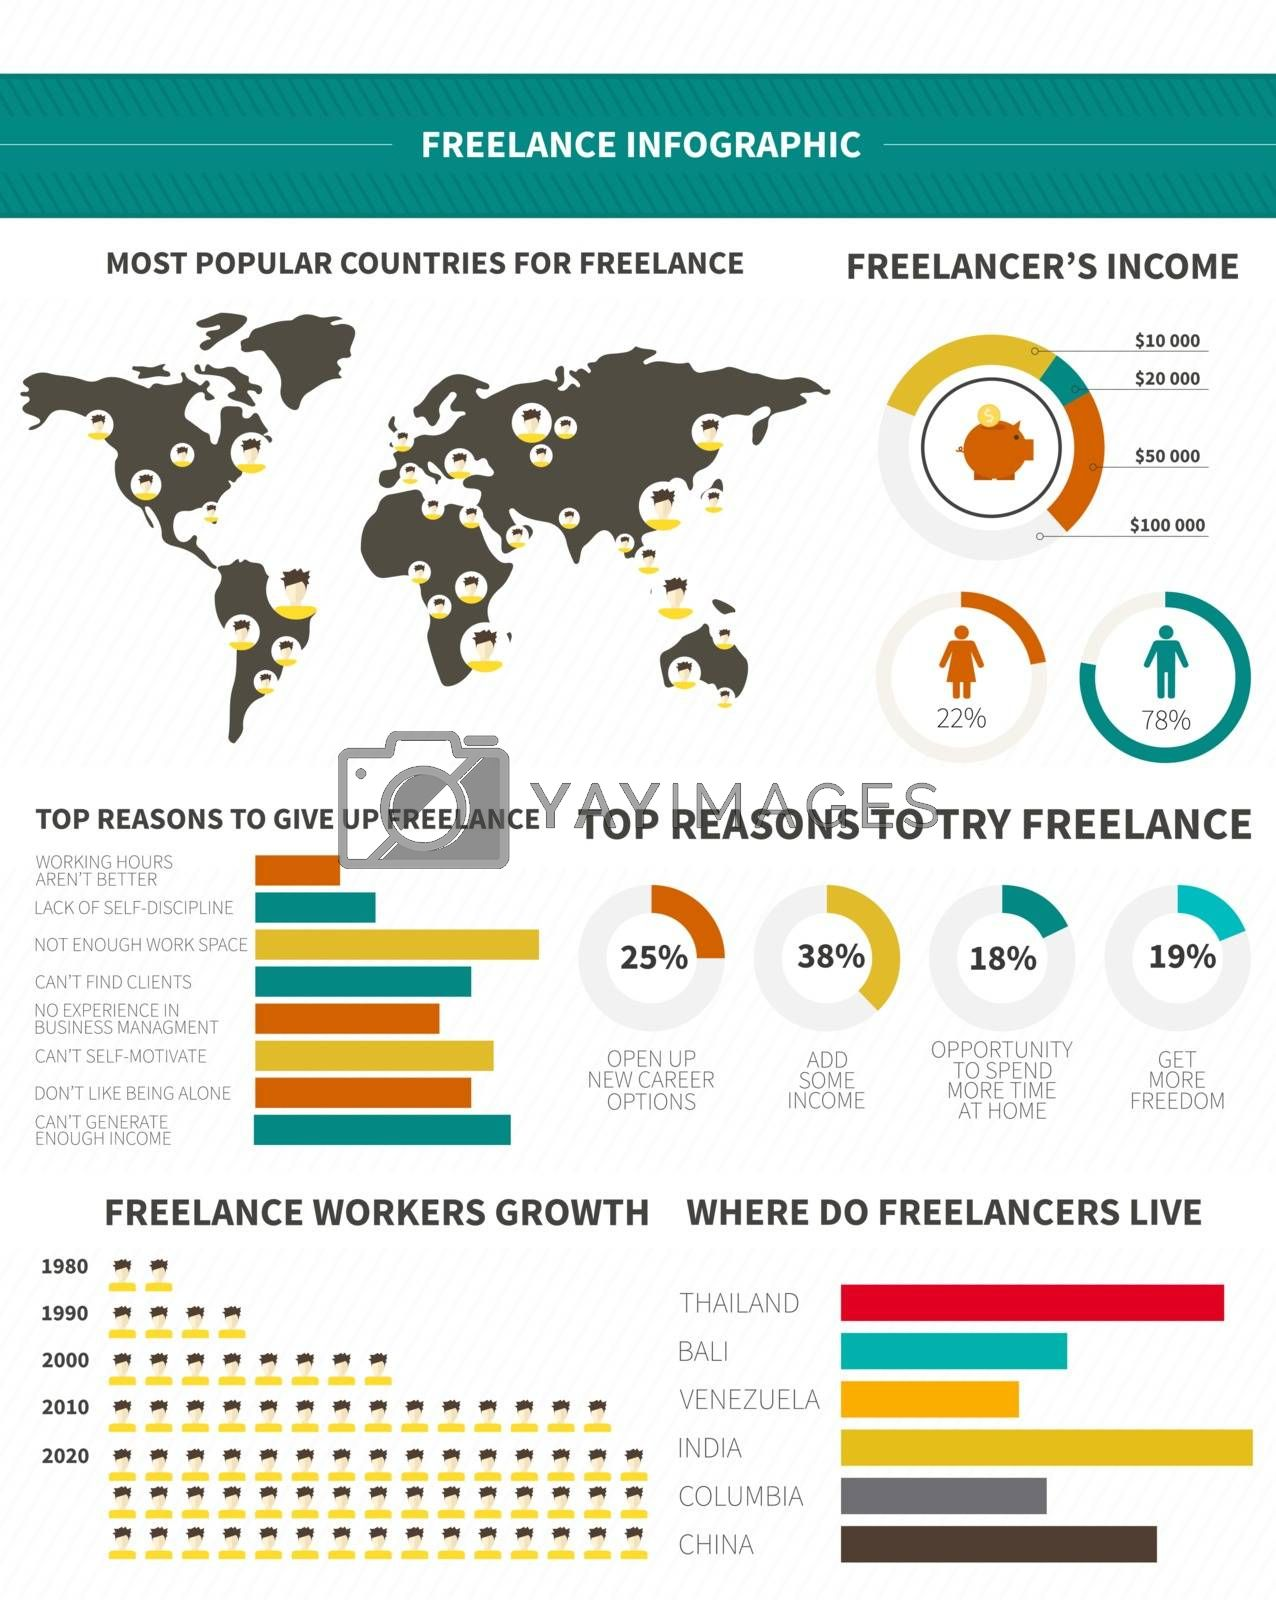 Freelance infographic by Favete